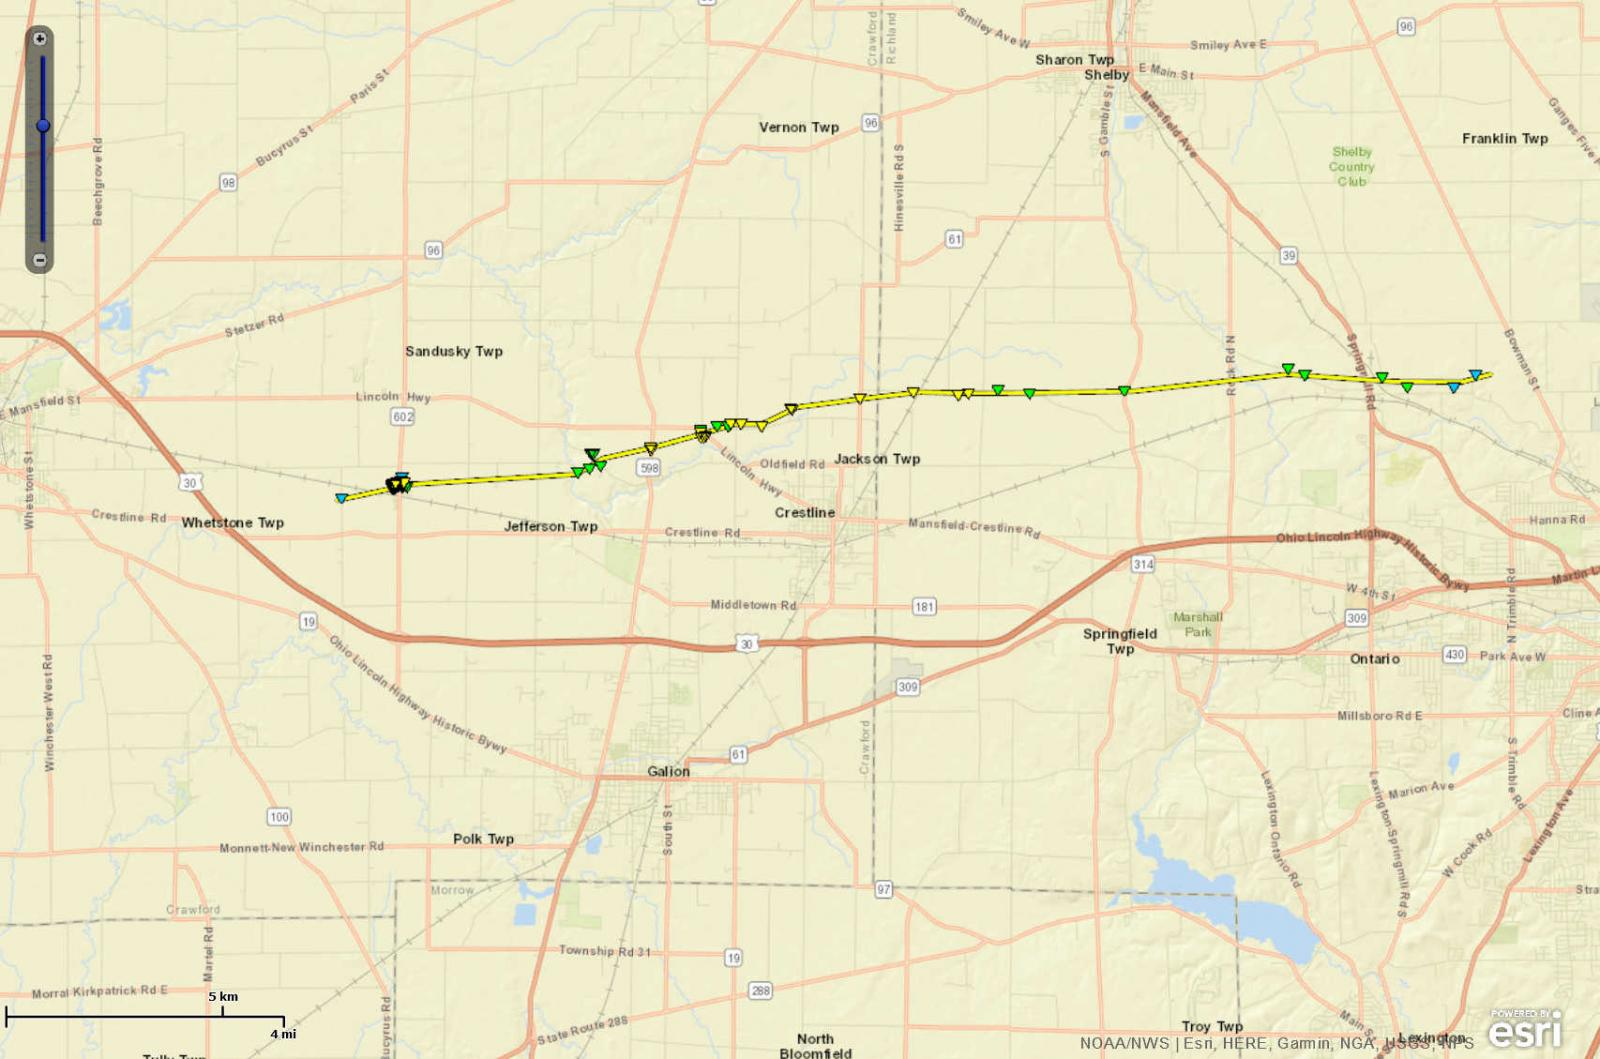 EF2 Tornado Confirmed from Crawford into Richland County on ... on map of warren ohio, crawford county, map of united states ohio, map of jeromesville ohio, map of ashland ohio area, map of cincinnati ohio, hancock county, allen county, map of clear creek township ohio, adams county, map of mifflin township ohio, holmes county, map of chippewa ohio, map of parma ohio, map of broadview heights ohio, map of lebanon ohio, richland county, map of milton township ohio, franklin county, map of canton ohio, clark county, map of beloit ohio, cuyahoga county, map of perry township ohio, knox county, map of orange township ohio, lorain county, wayne county, lake county, medina county, map of ashtabula ohio, erie county, map of west chester ohio, map of cuyahoga river ohio, delaware county, fairfield county, marion county, map of madison ohio,